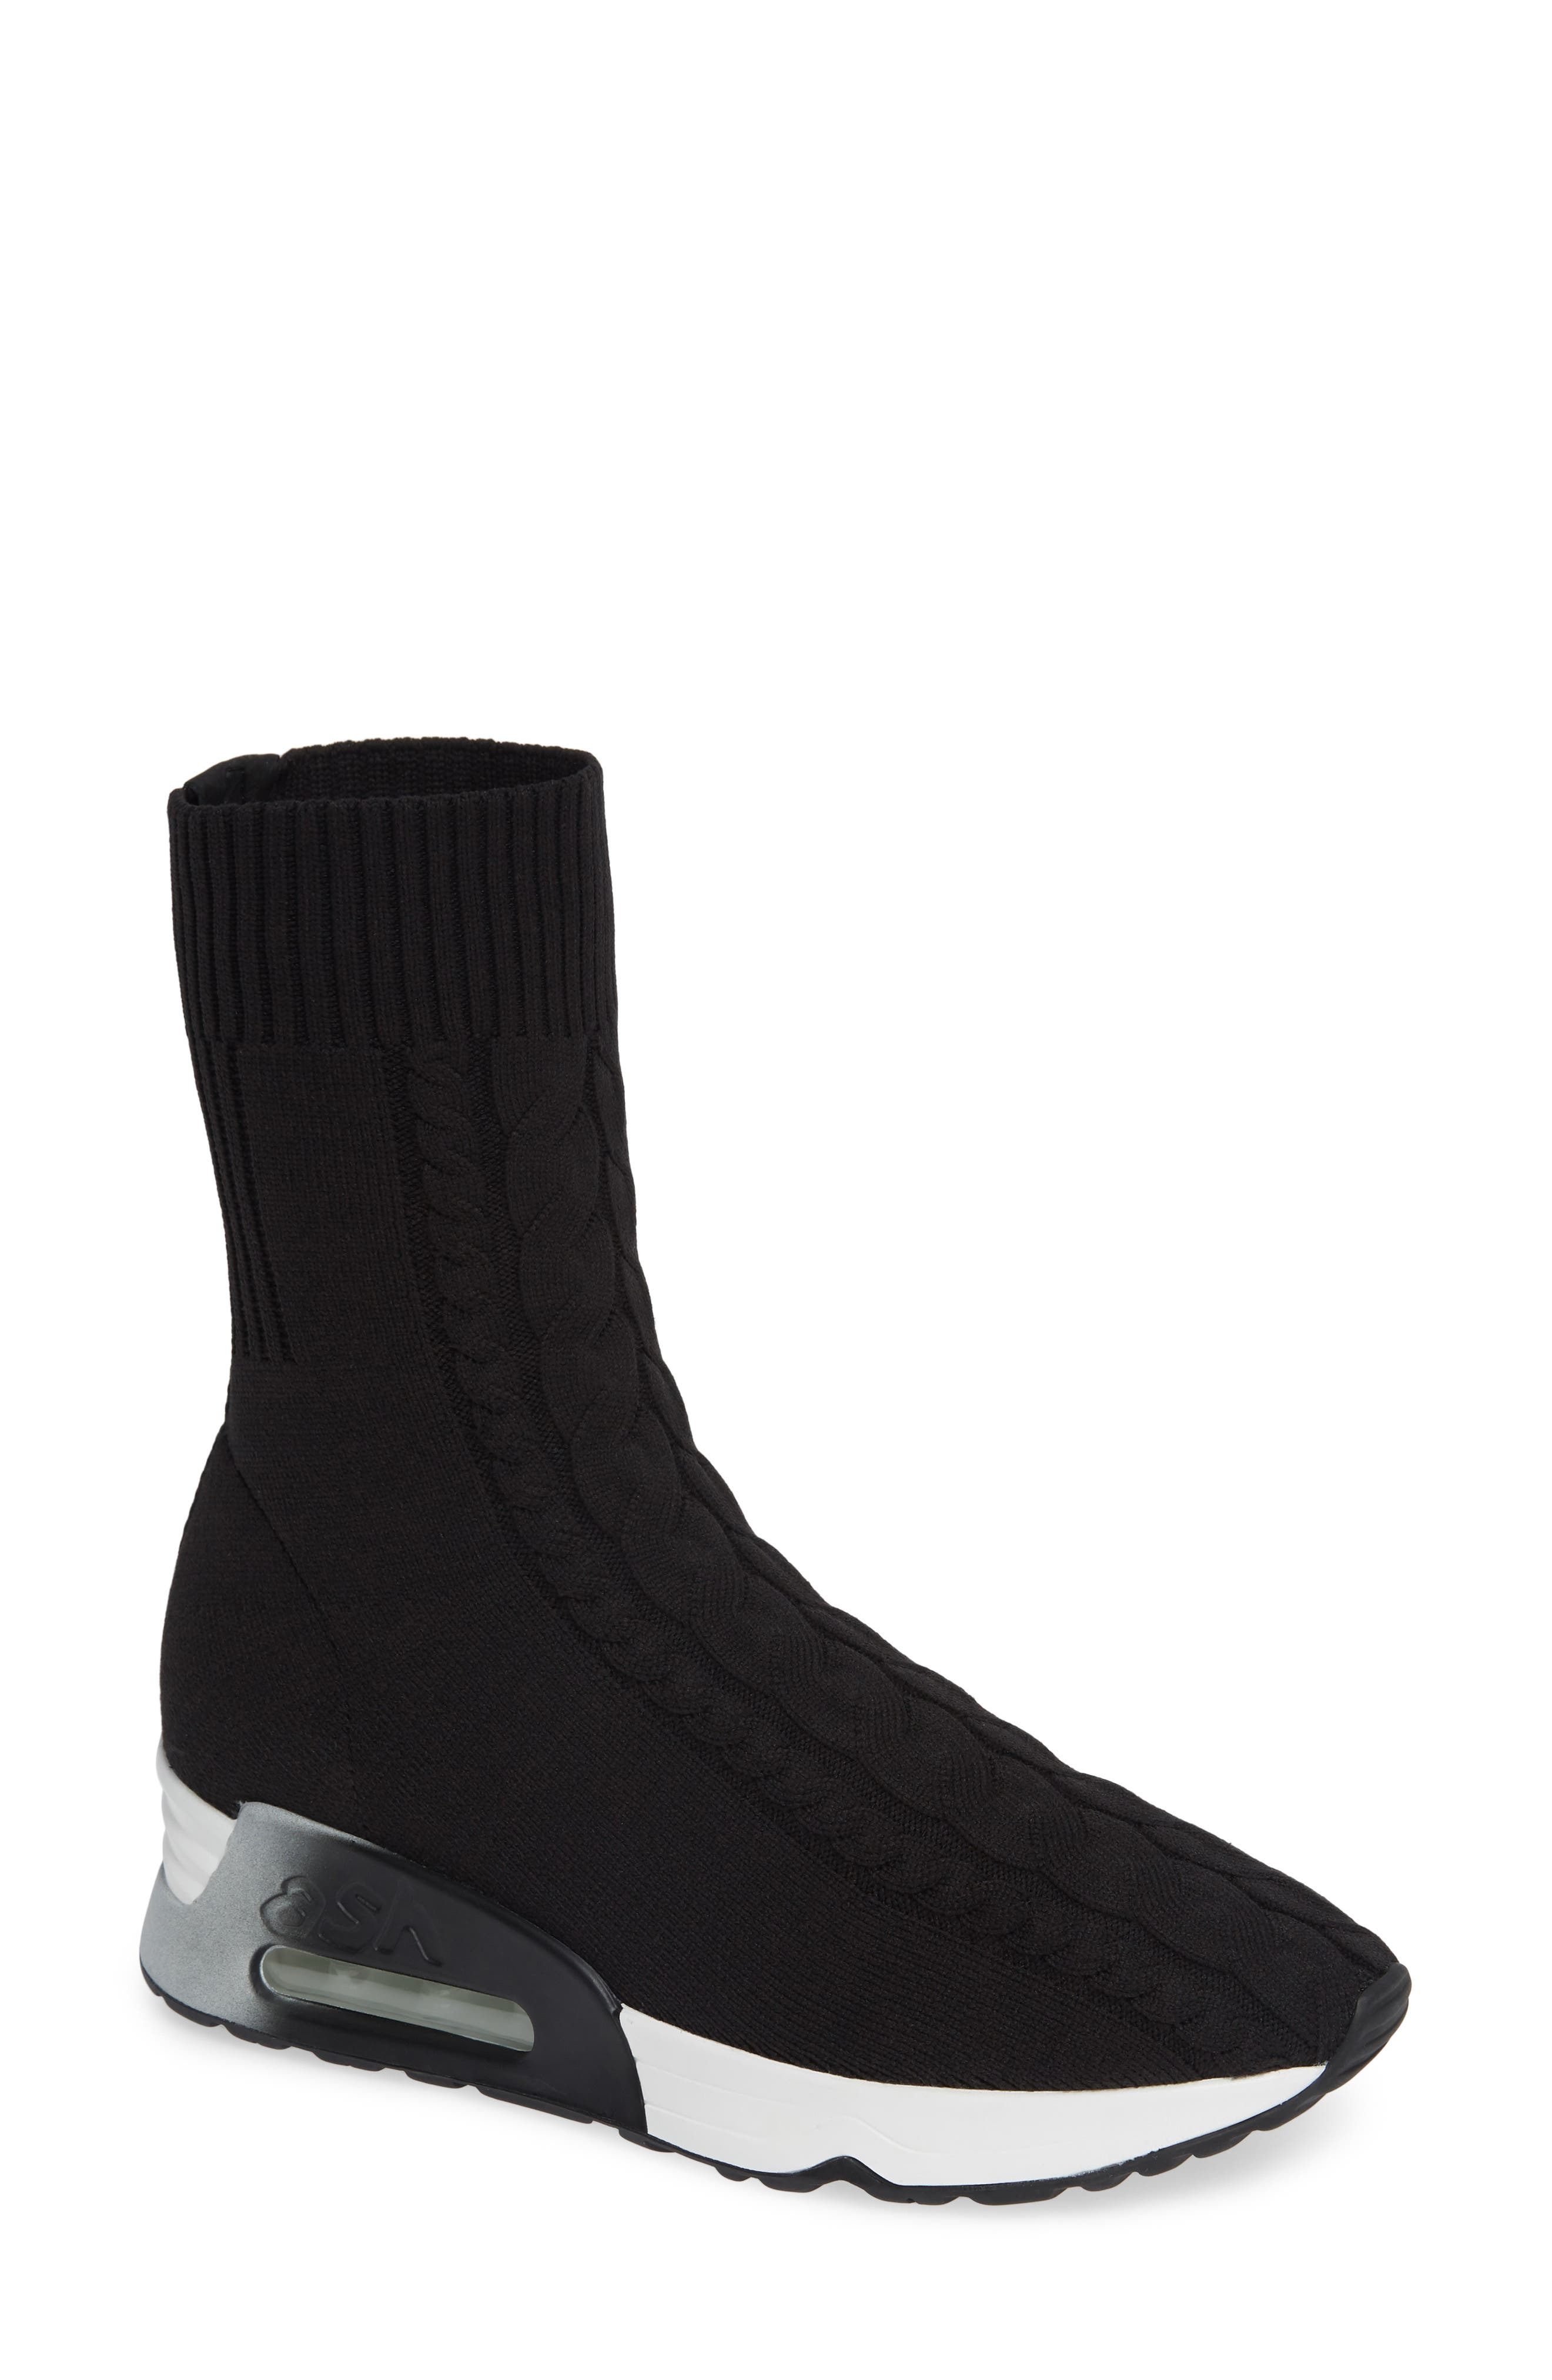 Liv Knit Sneaker Bootie,                             Main thumbnail 1, color,                             BLACK